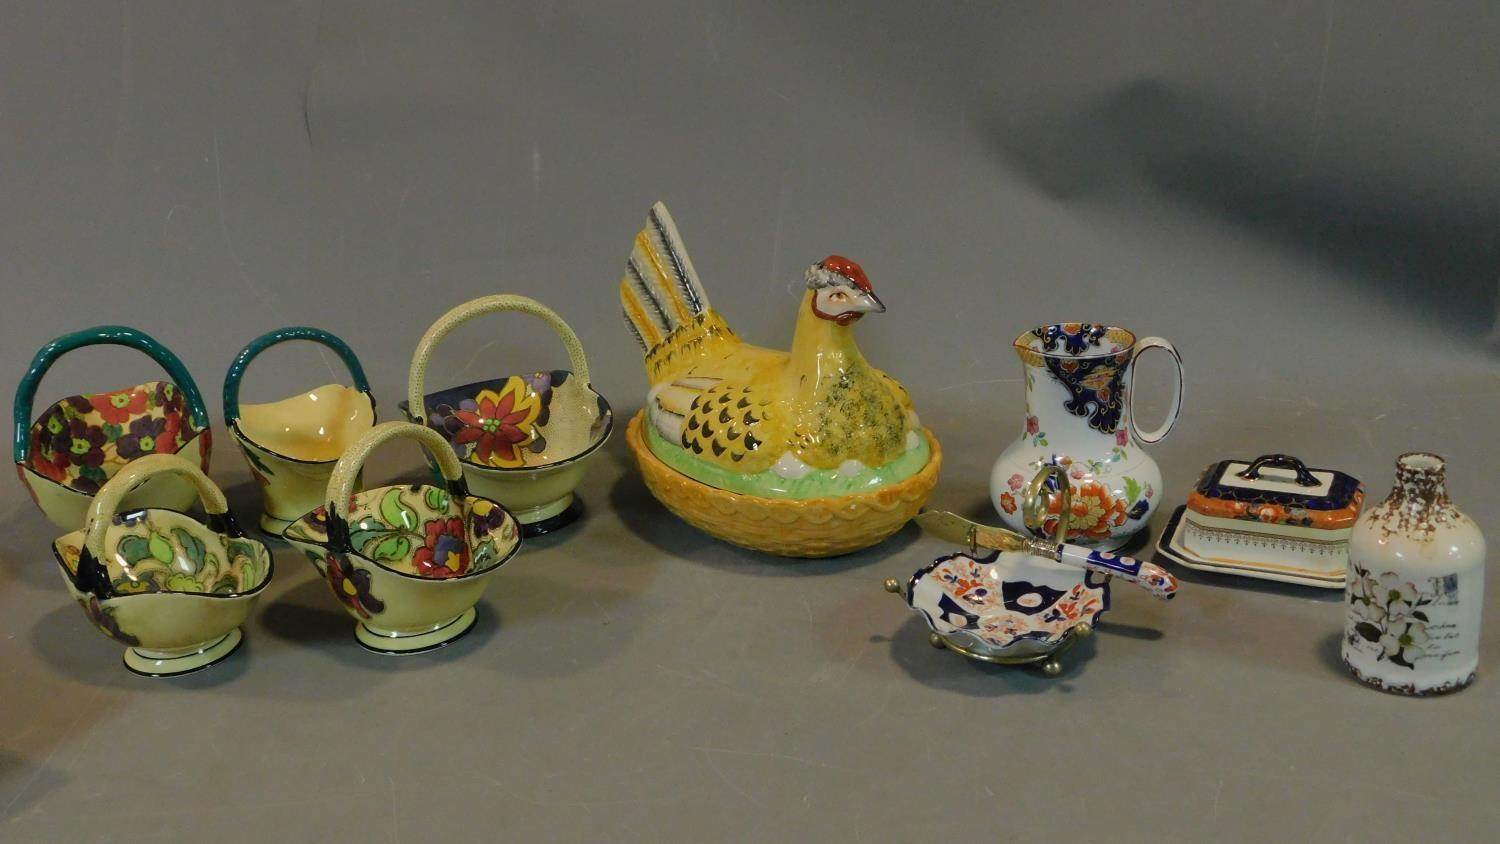 A collection of Art Deco Tuscan Decoro pottery baskets and other ceramic items.